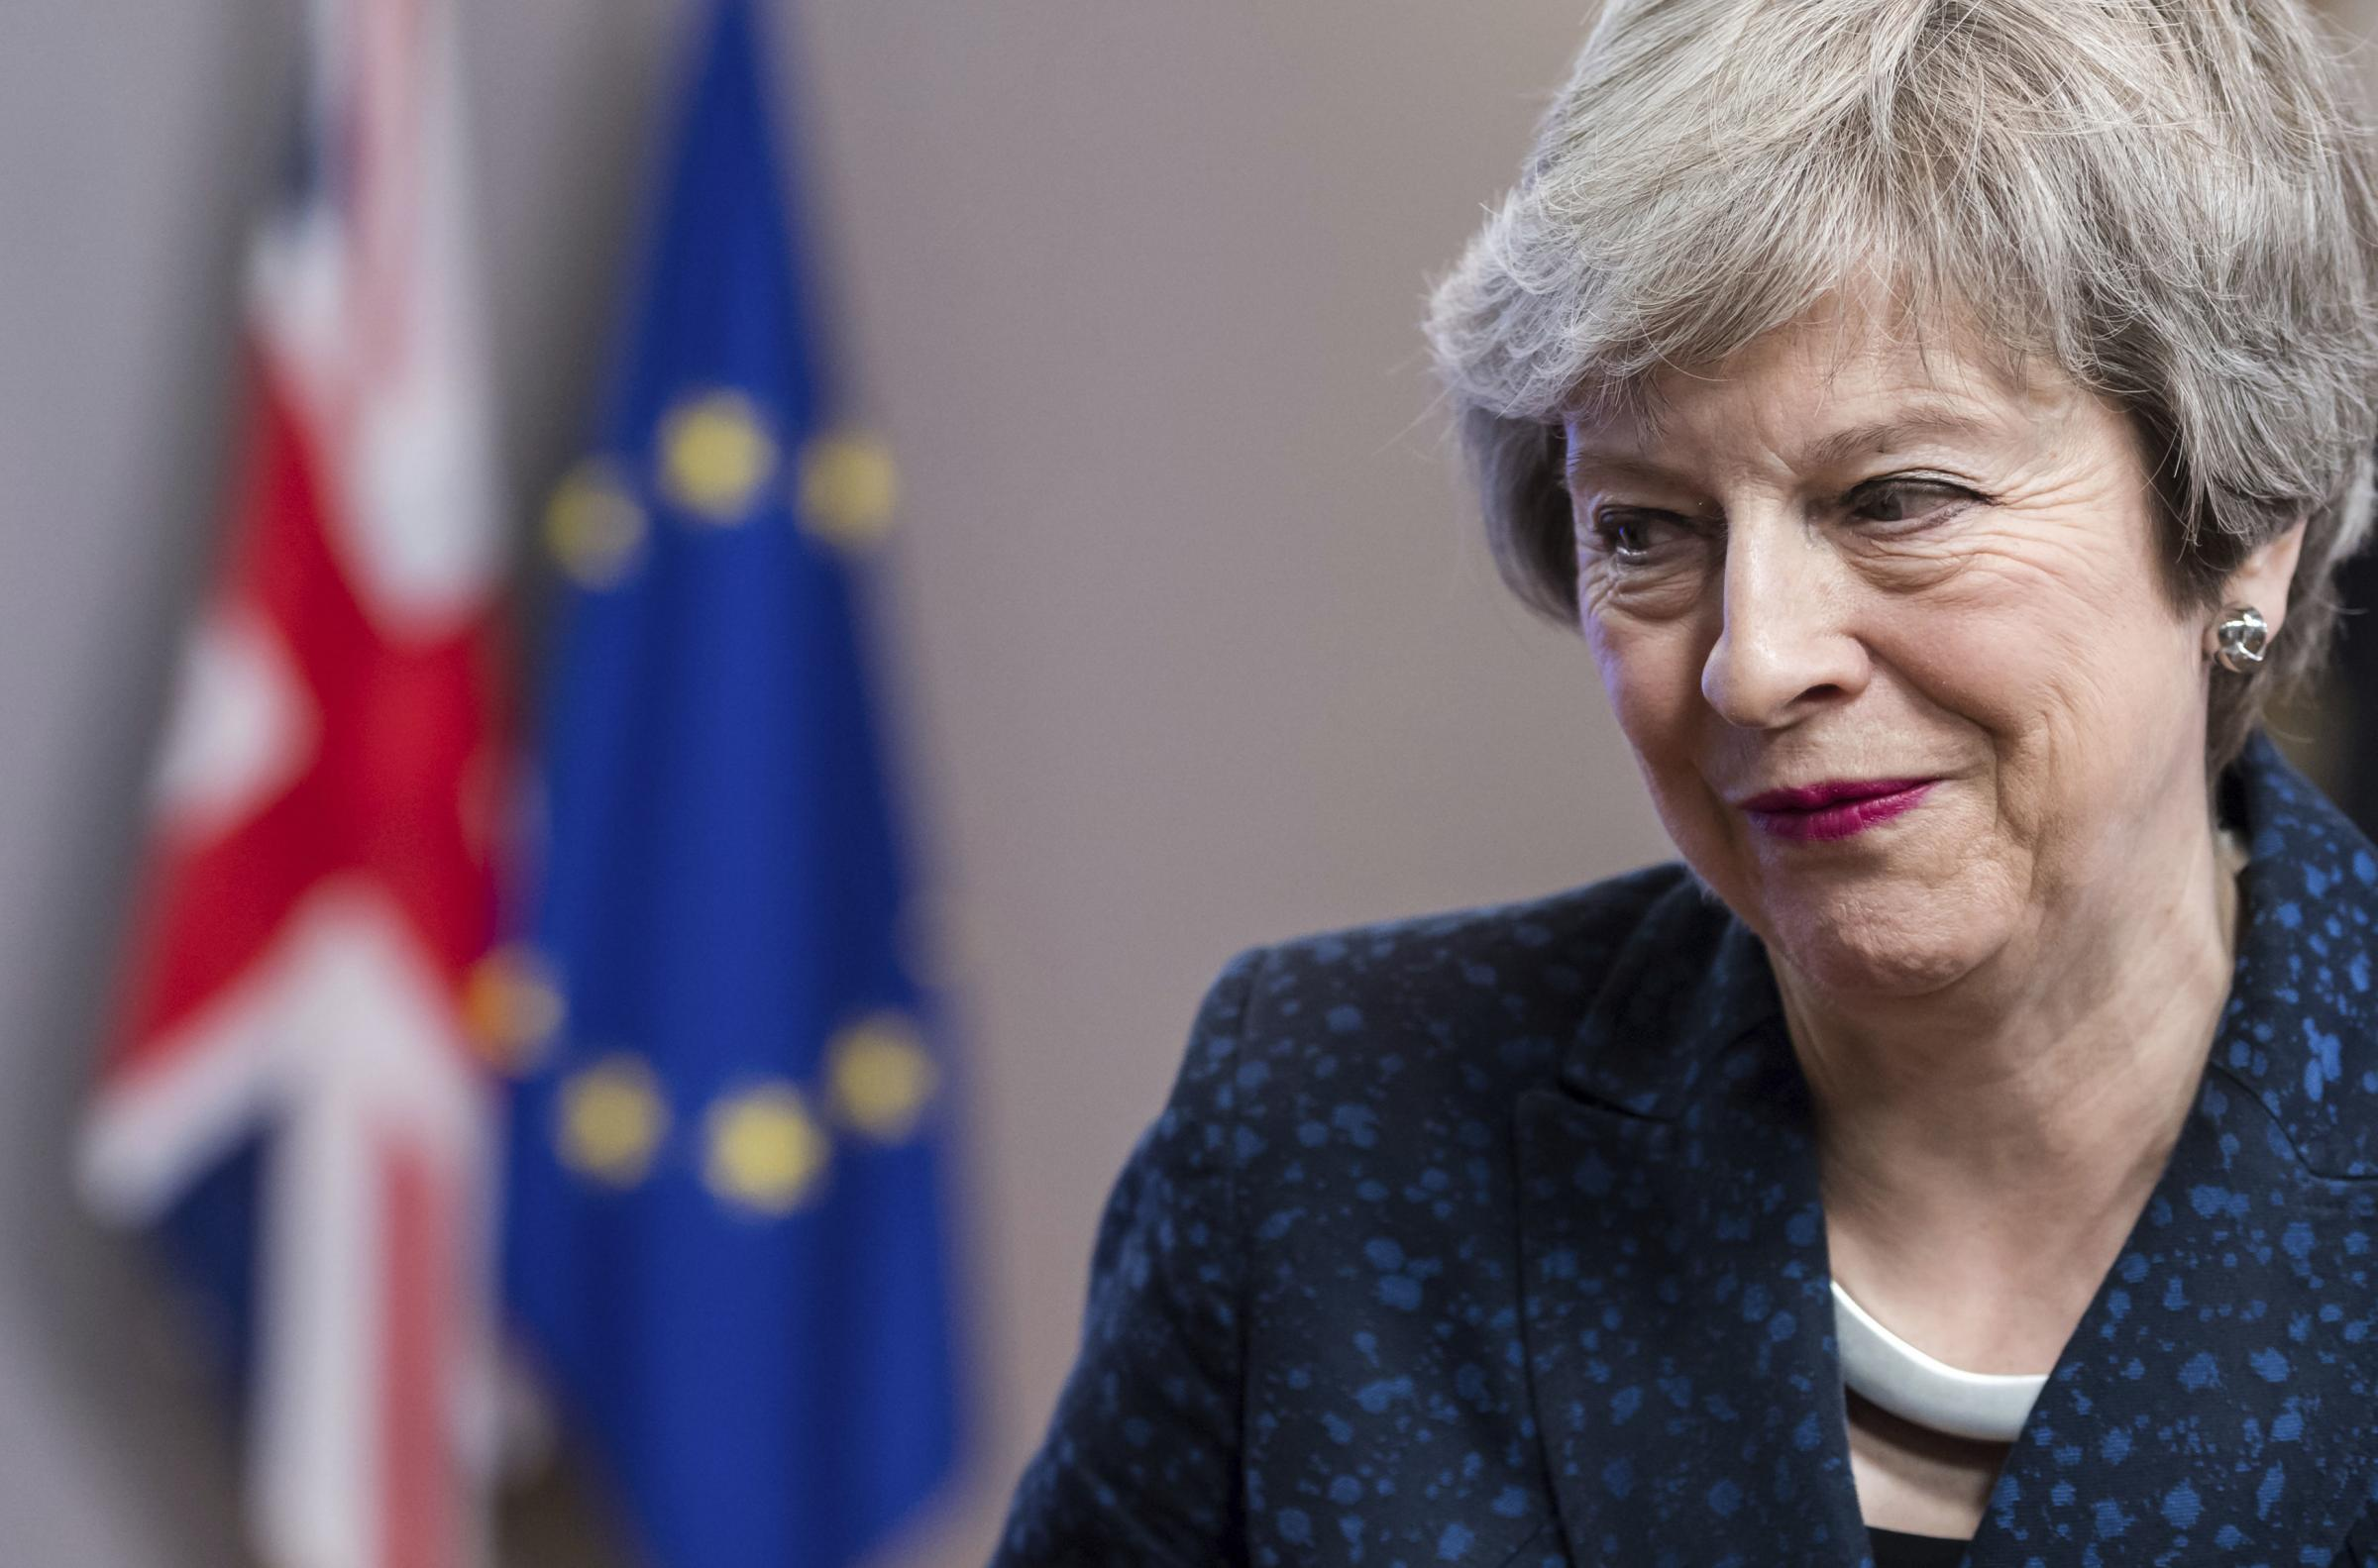 Theresa May is seeking changes to the backstop measure to prevent a hard border with Ireland